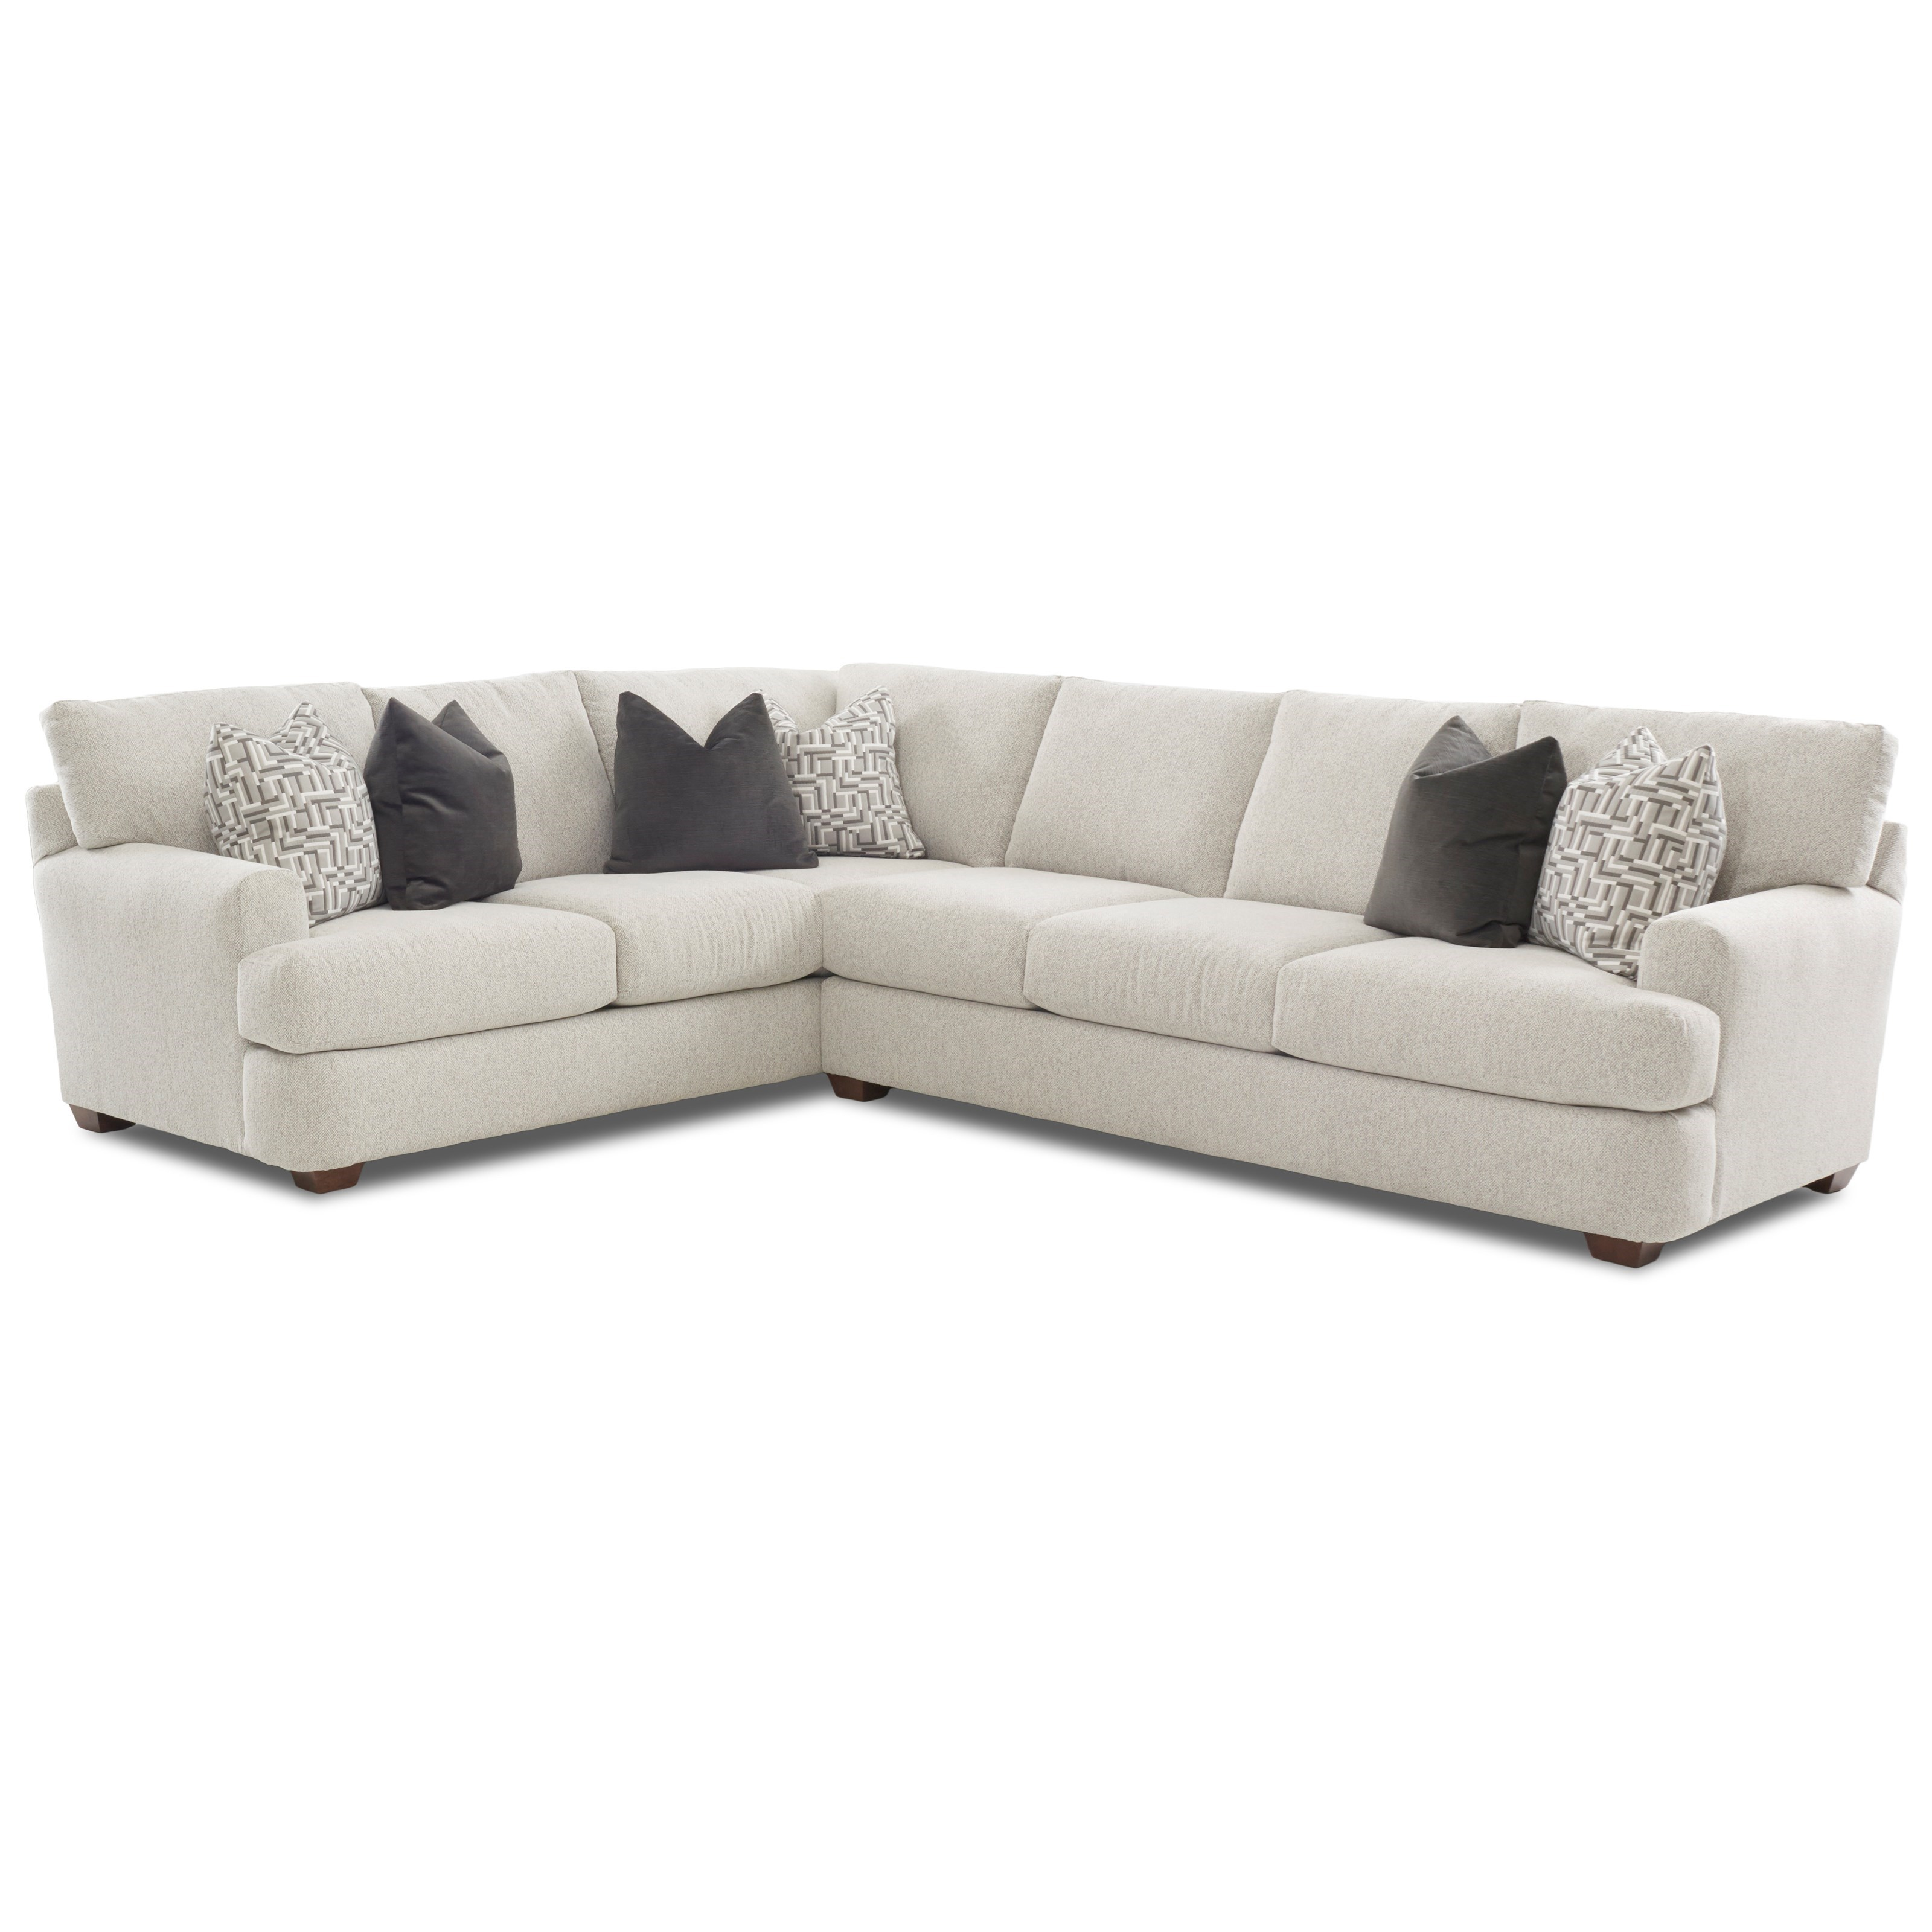 Haynes 2 Pc Sectional Sofa w/ LAF Corner Sofa by Klaussner at Johnny Janosik